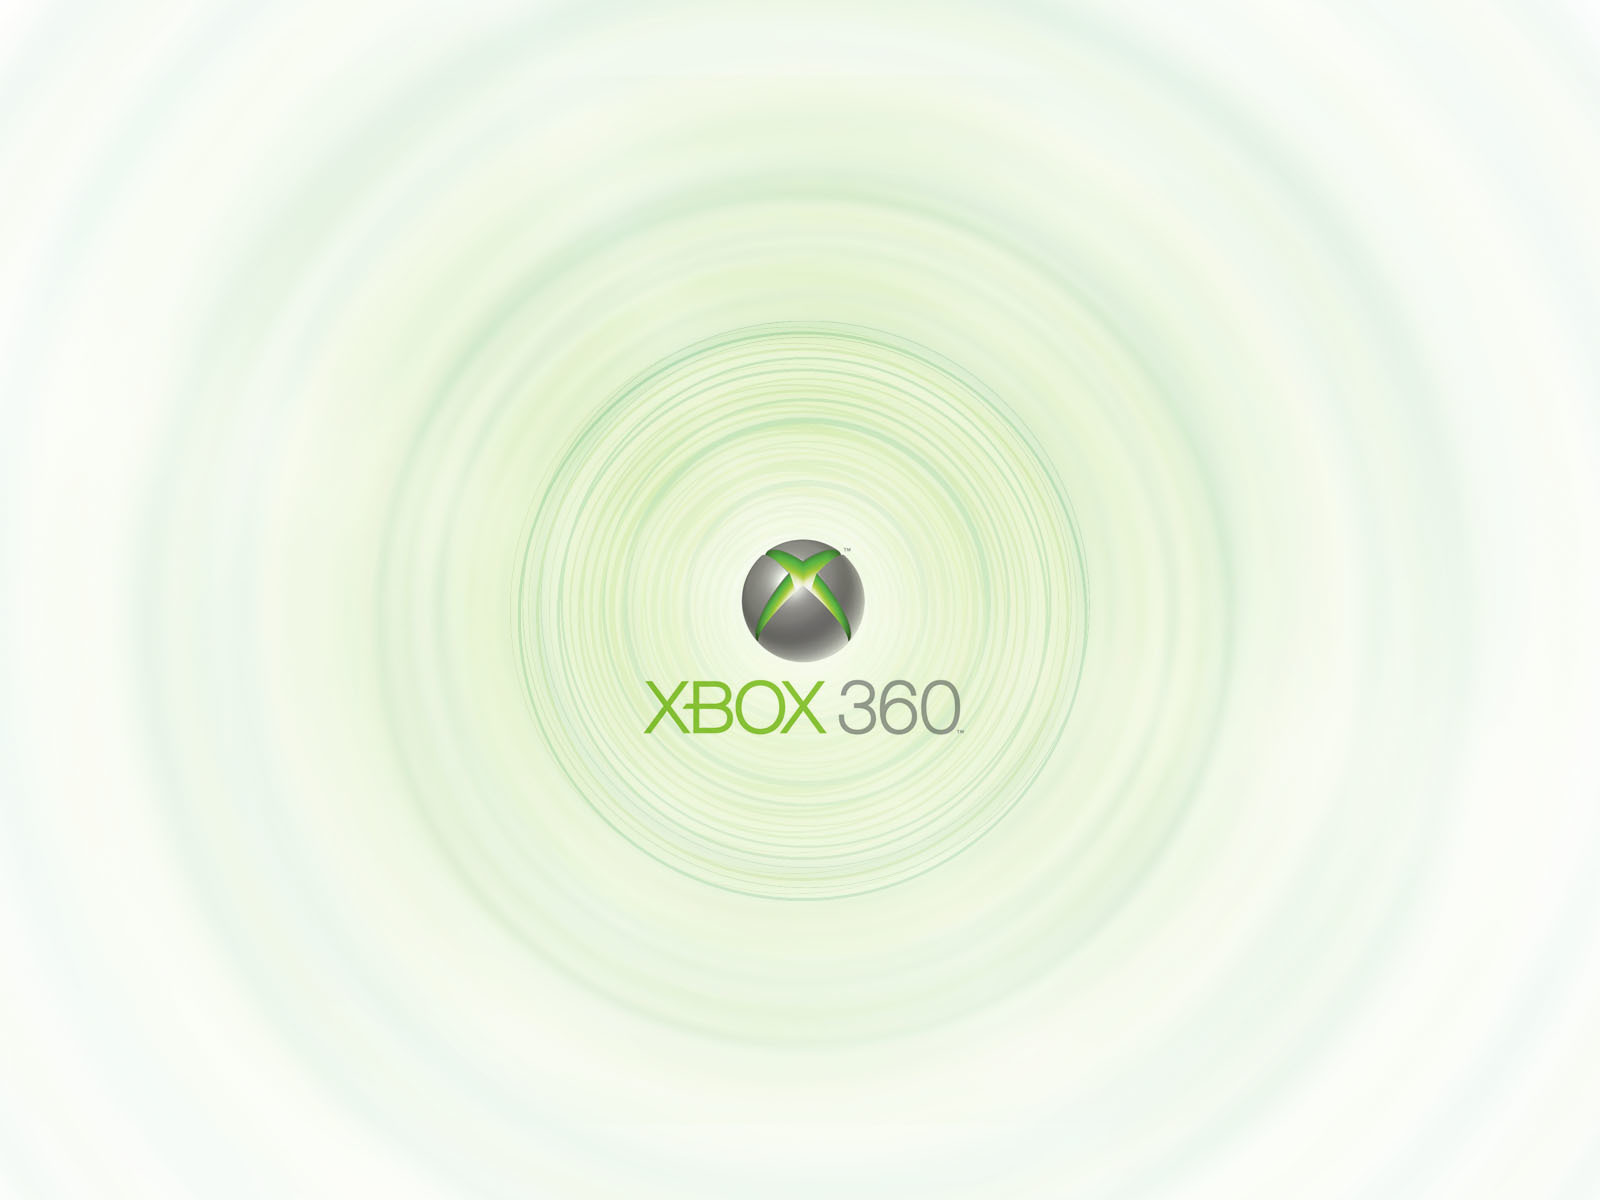 microsoft xbox computer HD Wallpaper